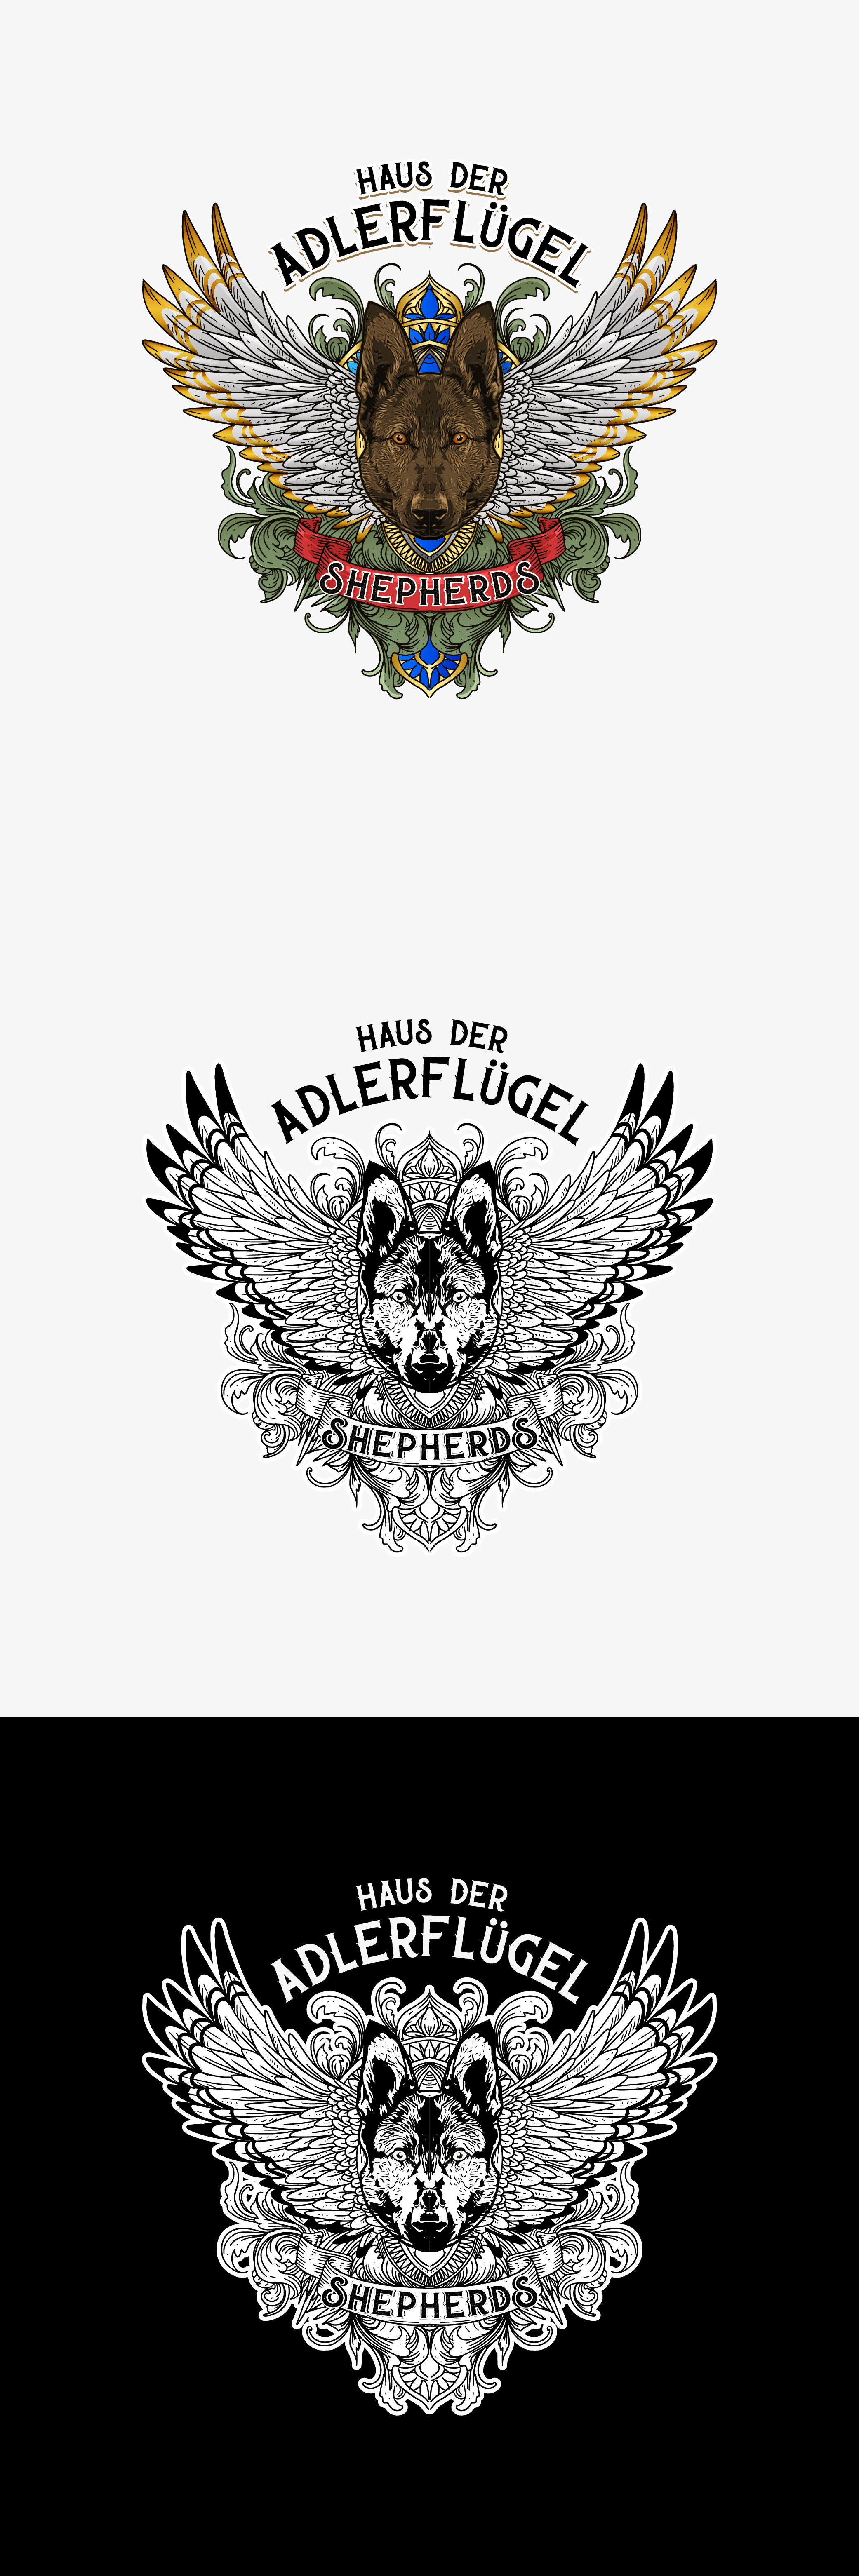 Design a creative, one of a kind, fierce, bad*** logo for a German Shepherd dog breeder